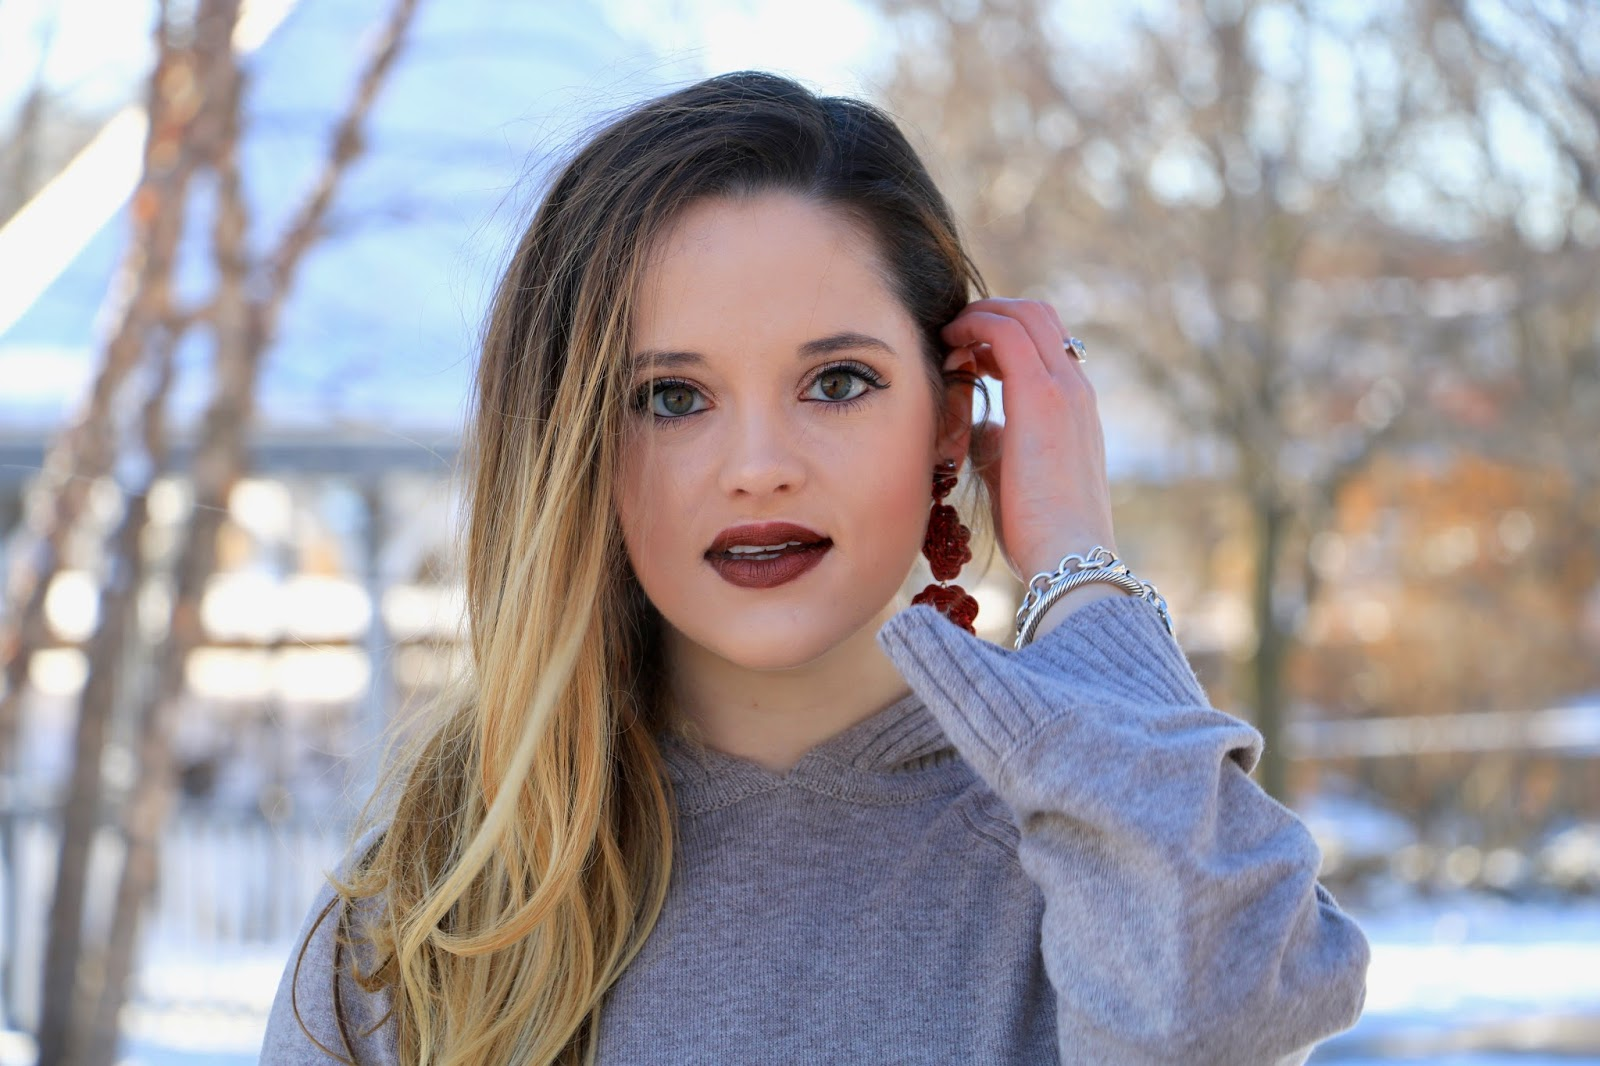 Nyc beauty blogger Kathleen Harper's winter makeup ideas